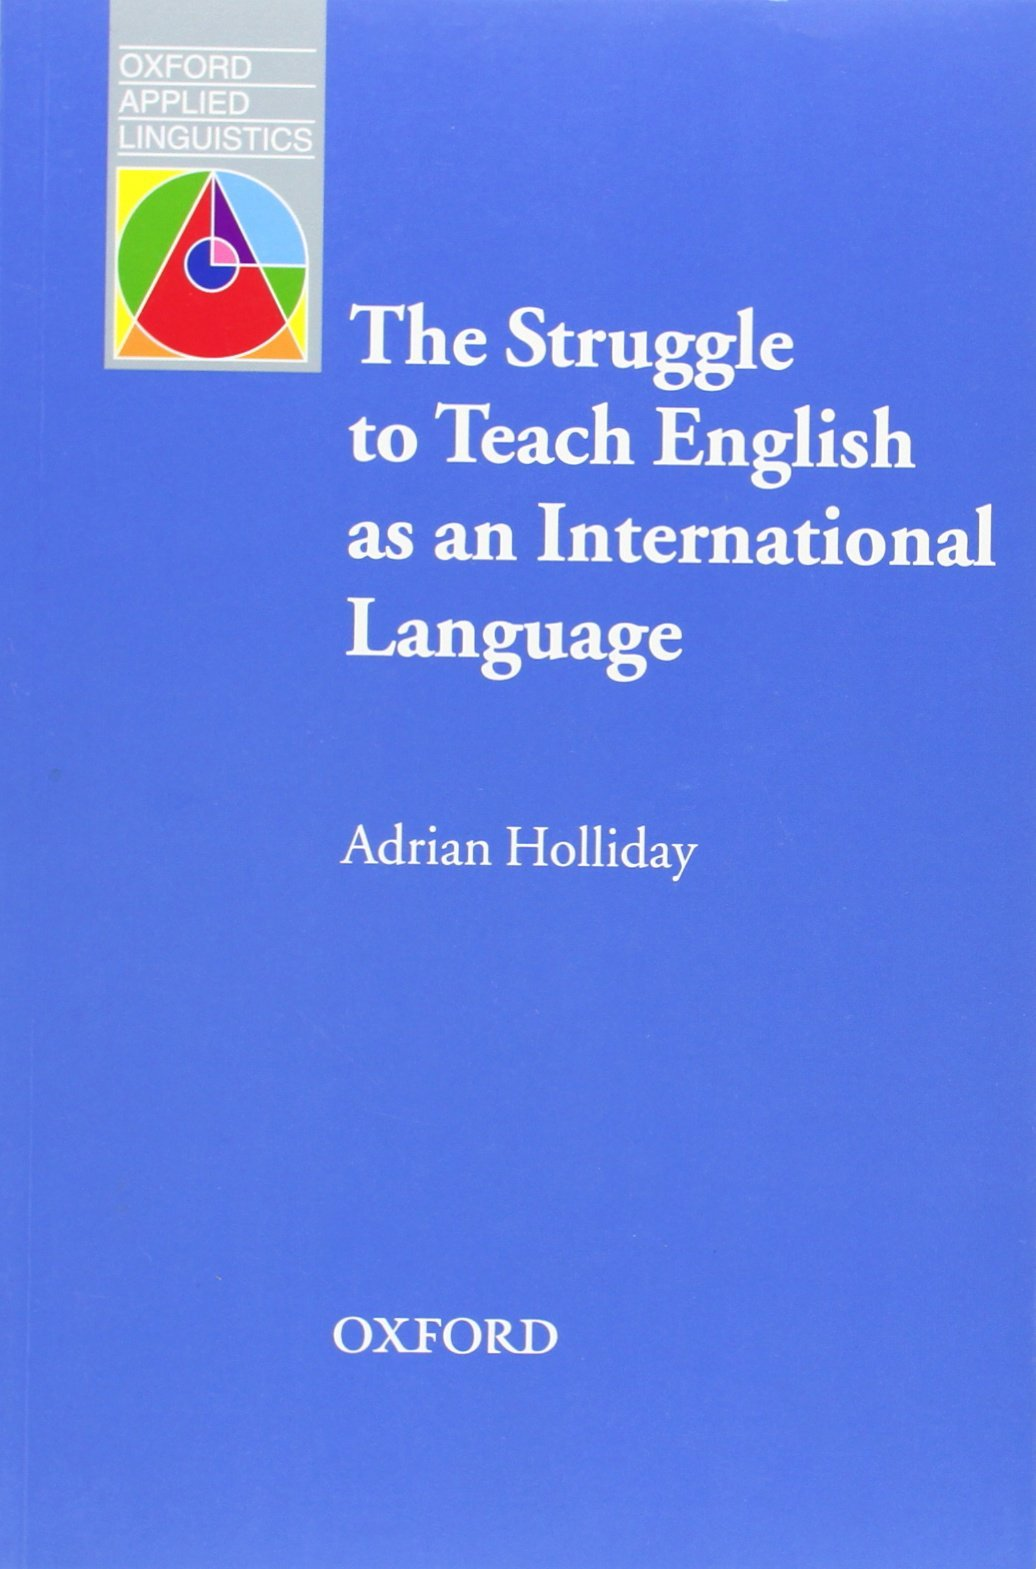 Download The Struggle to teach English as an International Language (Oxford Applied Linguistics) by Adrian Holliday (25-Aug-2005) Paperback pdf epub